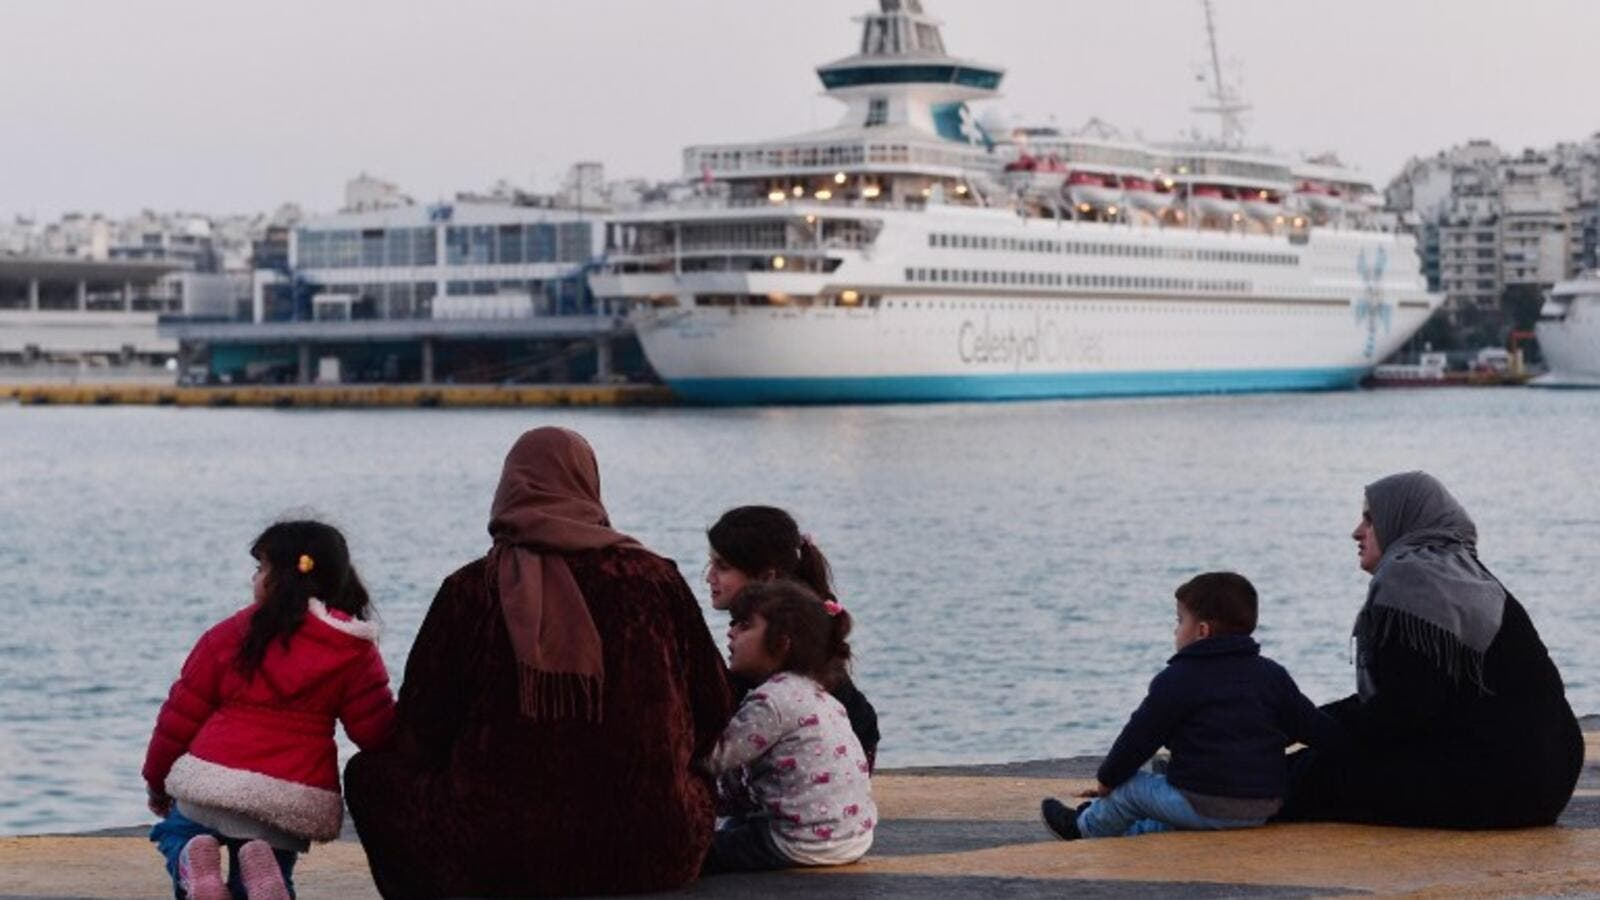 Refugee families sit on February 26, 2016 at a pier in the port of Piraeus, where hundreds of migrants and refugees, many from Syria stay temporarily. (AFP/Louisa Gouliamaki)